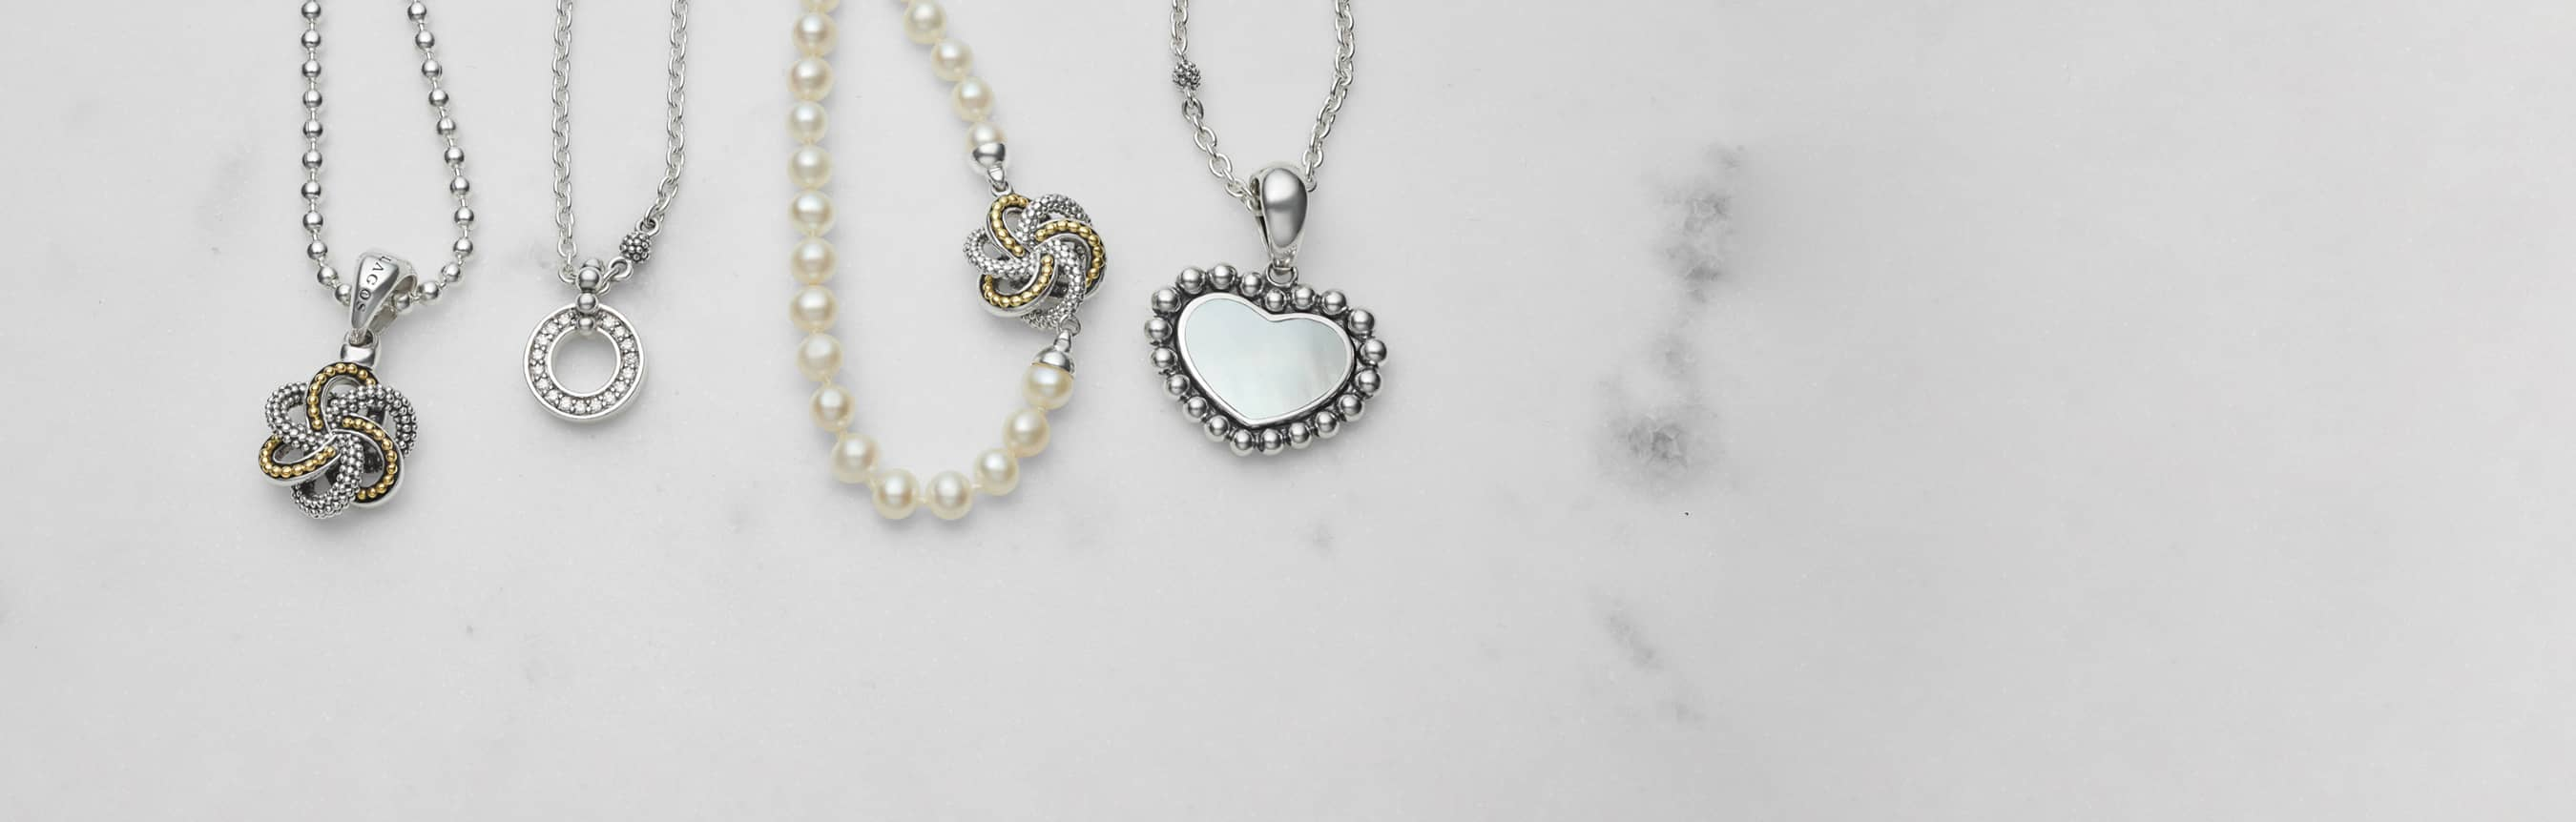 Pearl, Mother of Pearl, diamond and gold and silver love pendant necklaces displayed in a row.